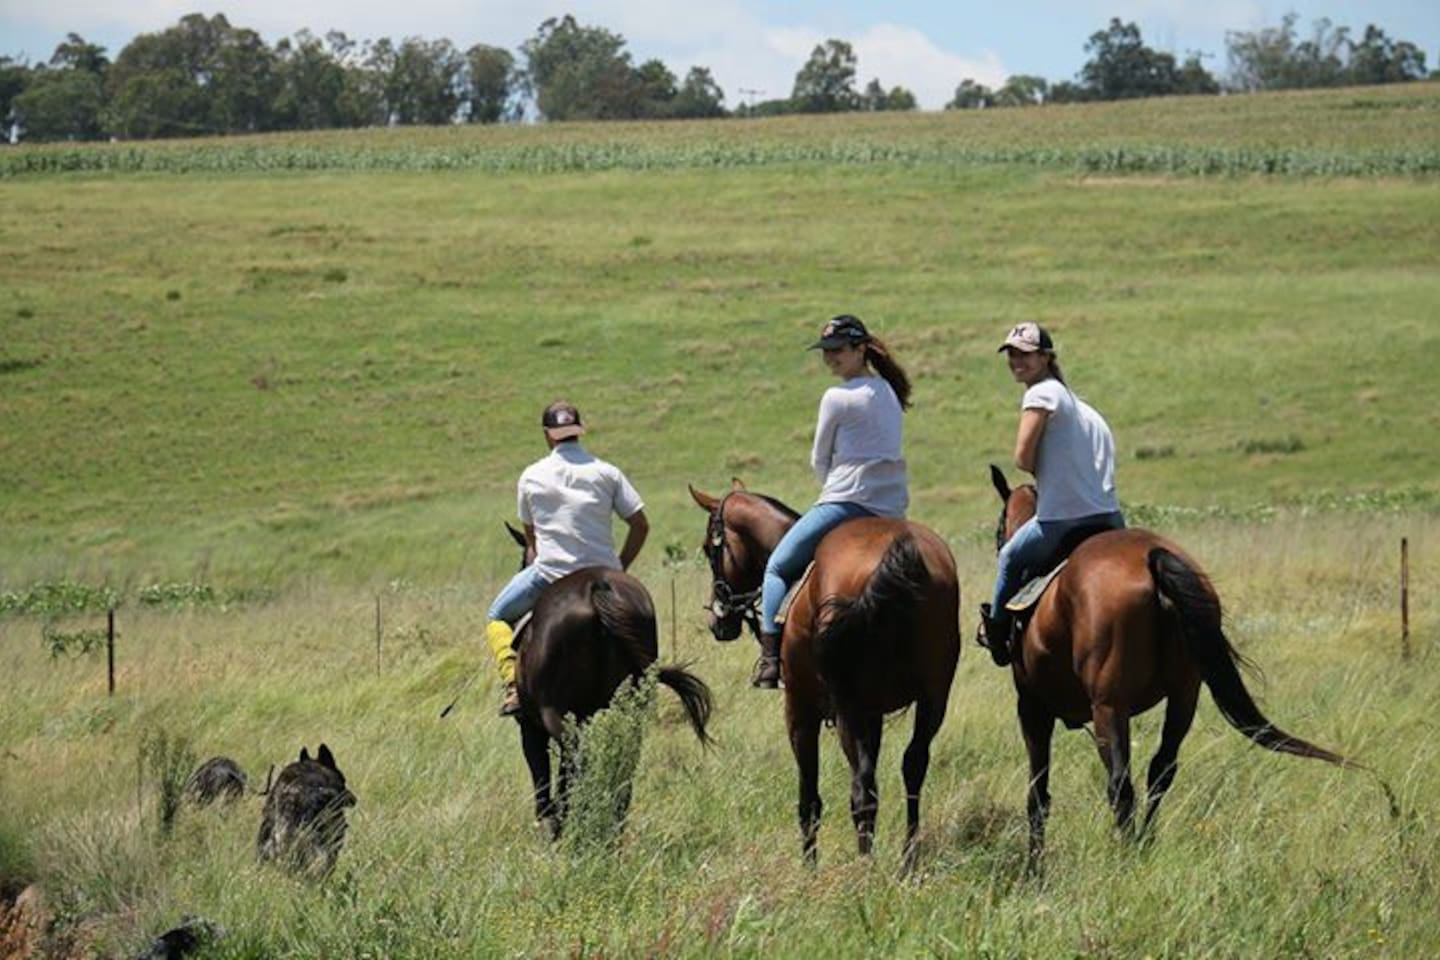 horse ridding available